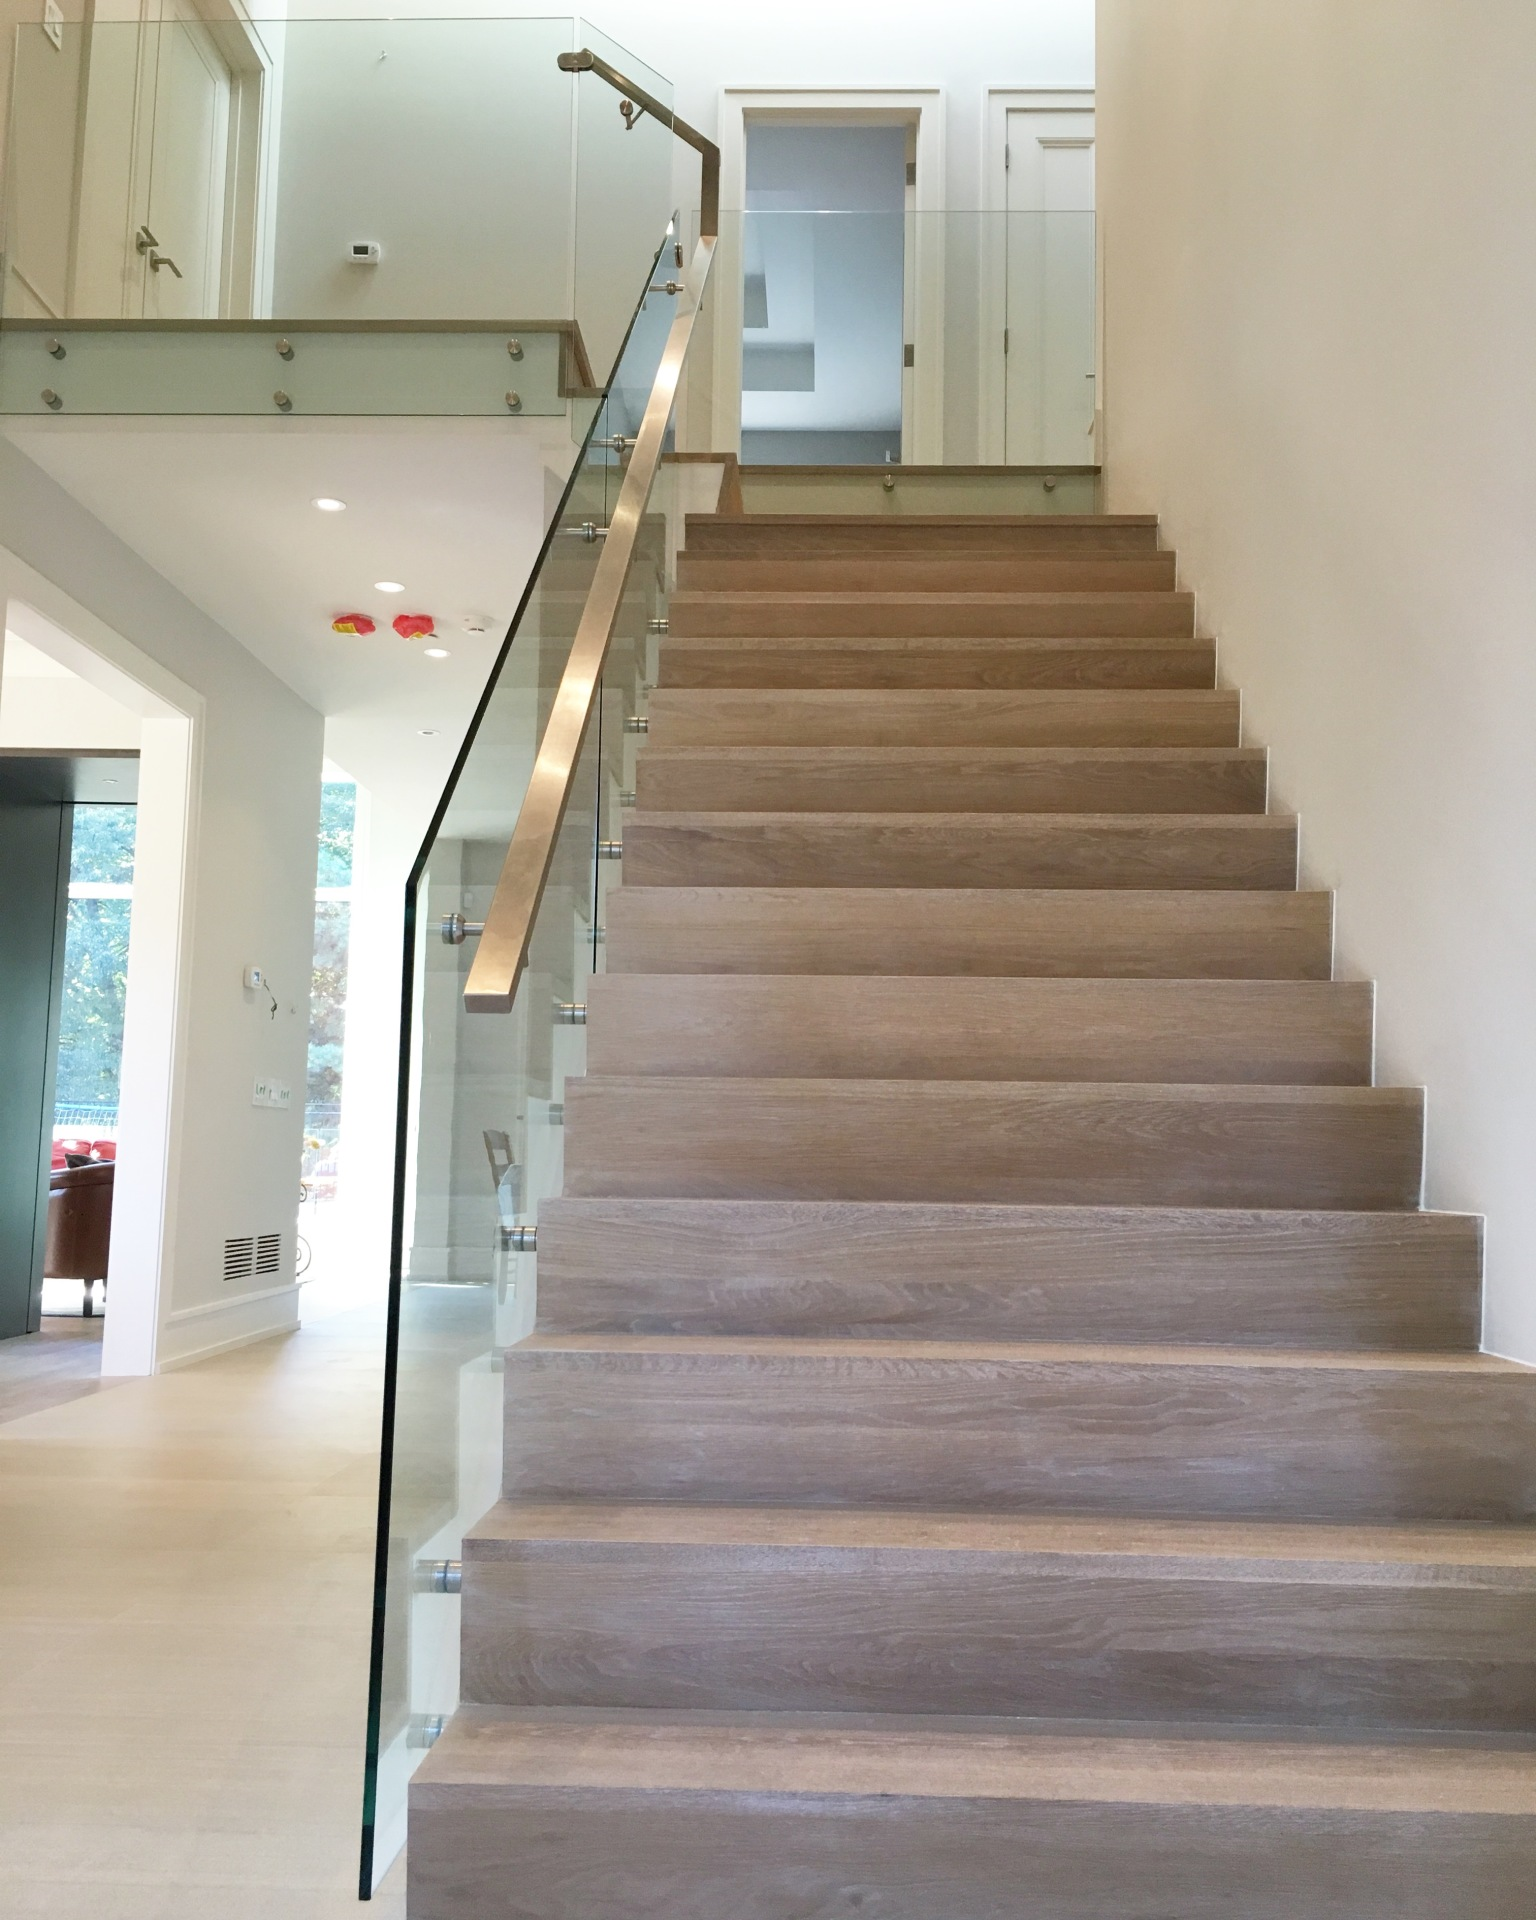 glass railing & handrail